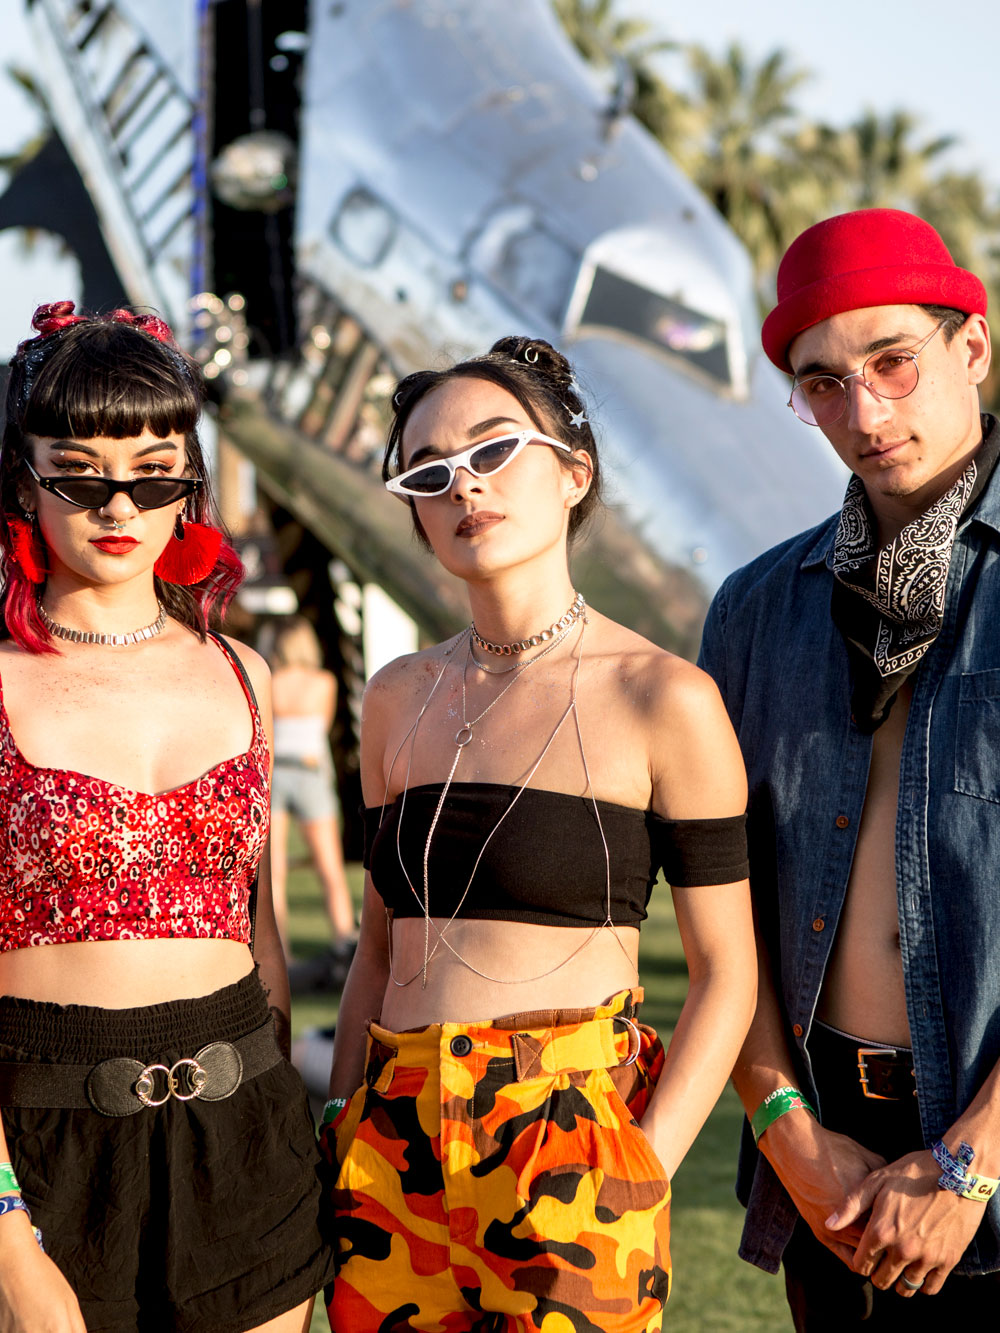 d11c503b041d Paisley bandana  crop top  yellow camo  slick shades  chokers – this shot  has it all. Coachella 2018